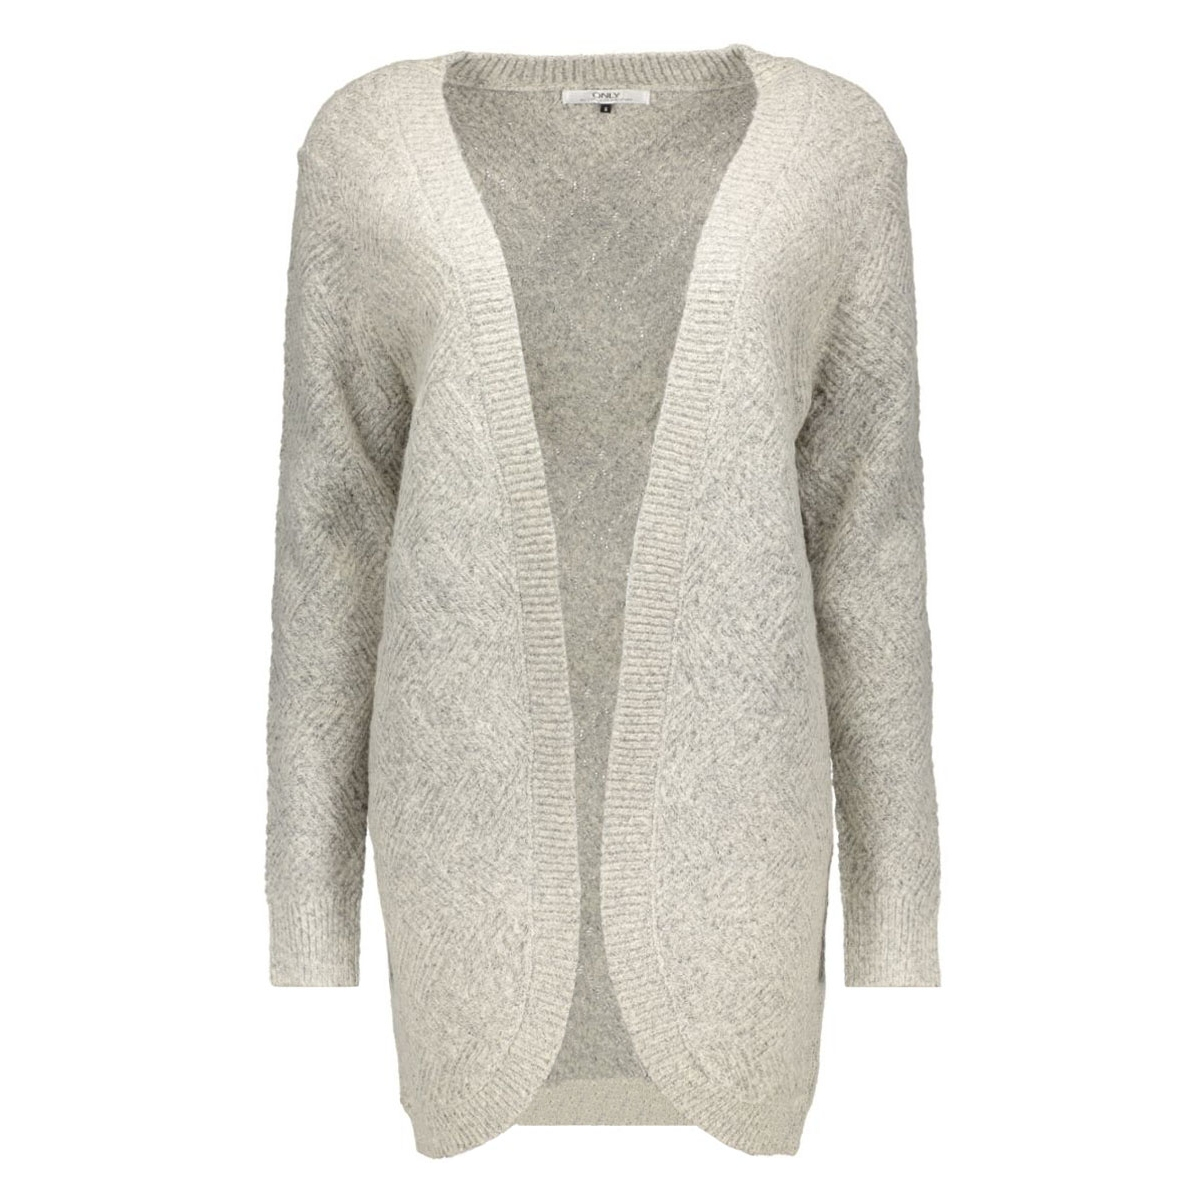 onlbretagne l/s open cardigan knt noos 15120119 only vest light grey melange